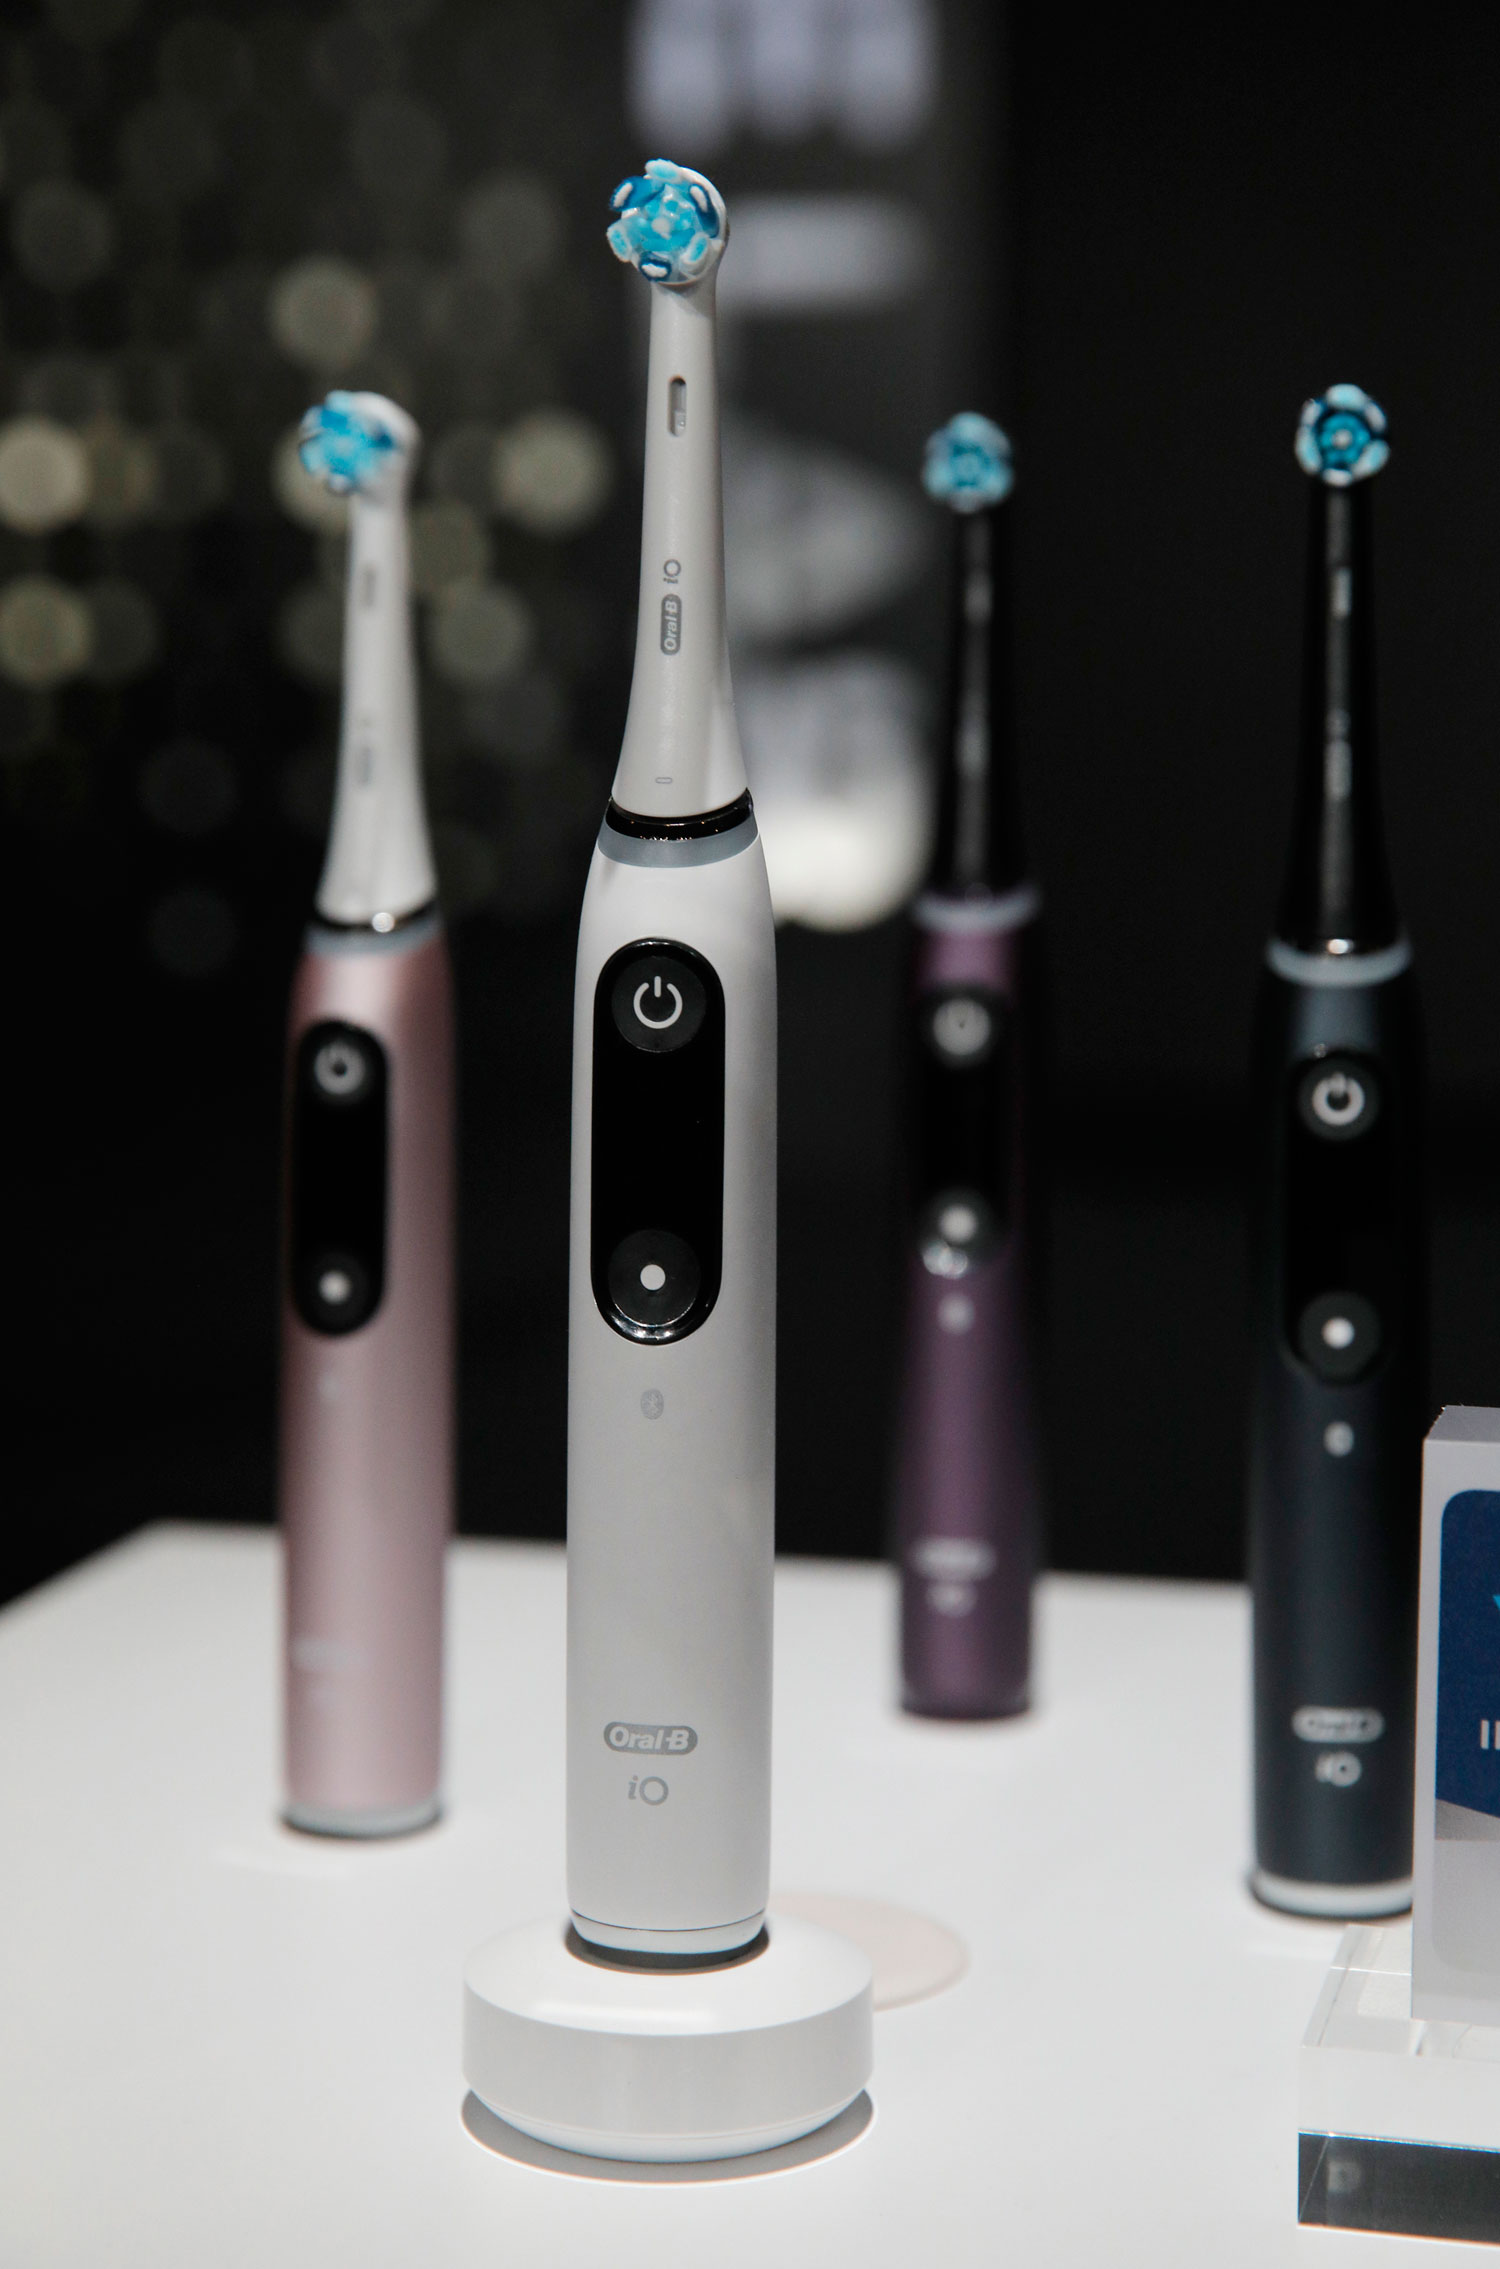 Dental hygiene is important for all, but for vast sections of the population struggling to make ends meet, it is often a luxury.